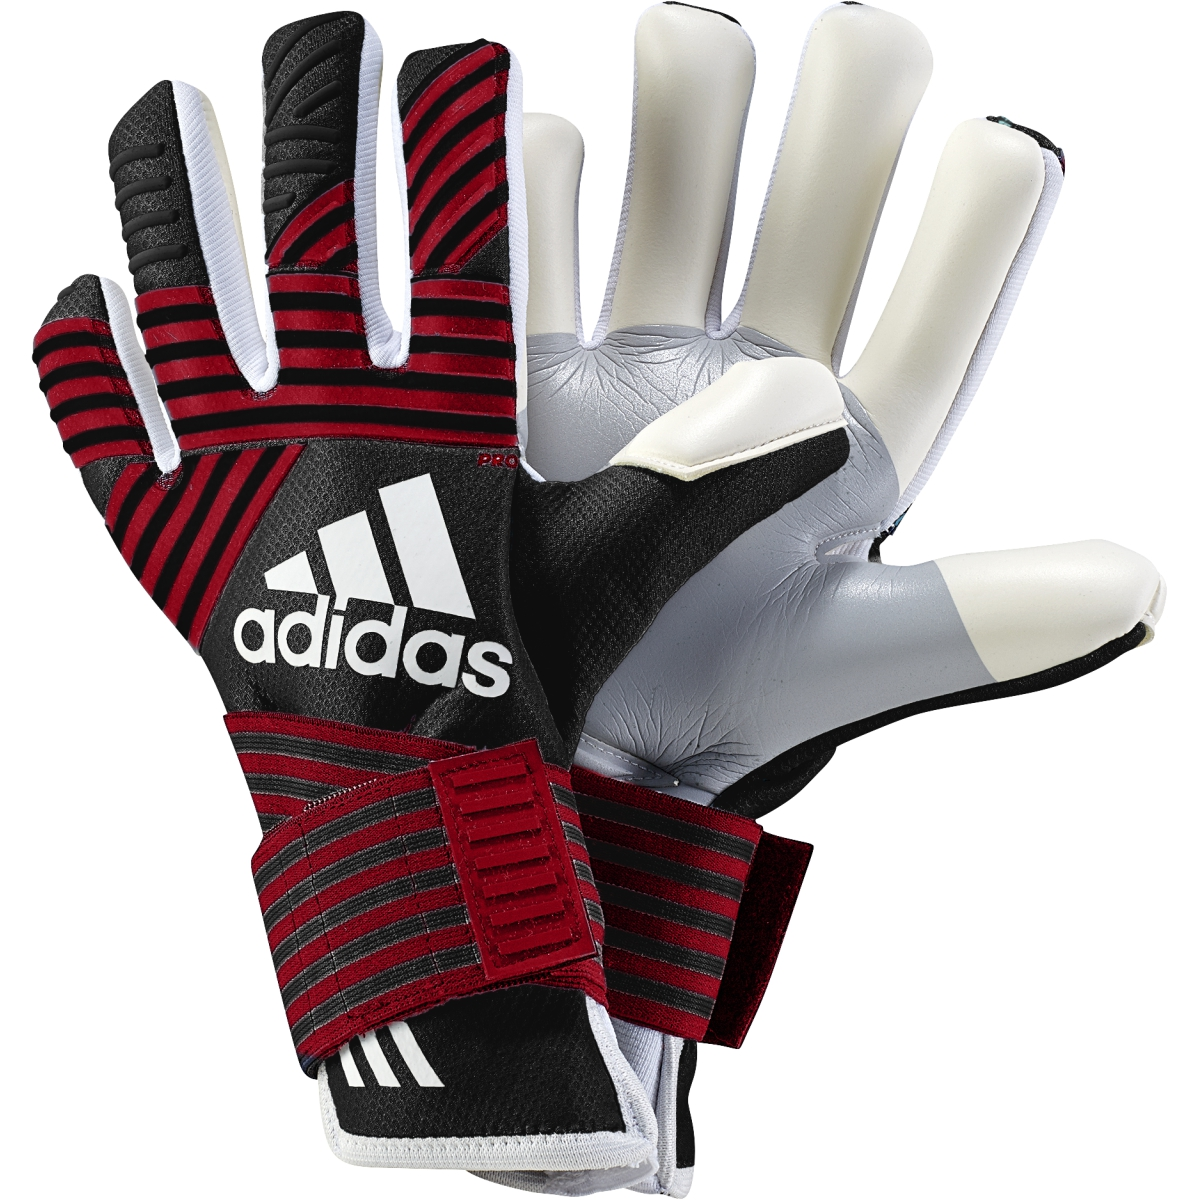 new product bf88c c2fdf adidas Ace Trans Pro GK Glove - Black/Red | Soccer ...